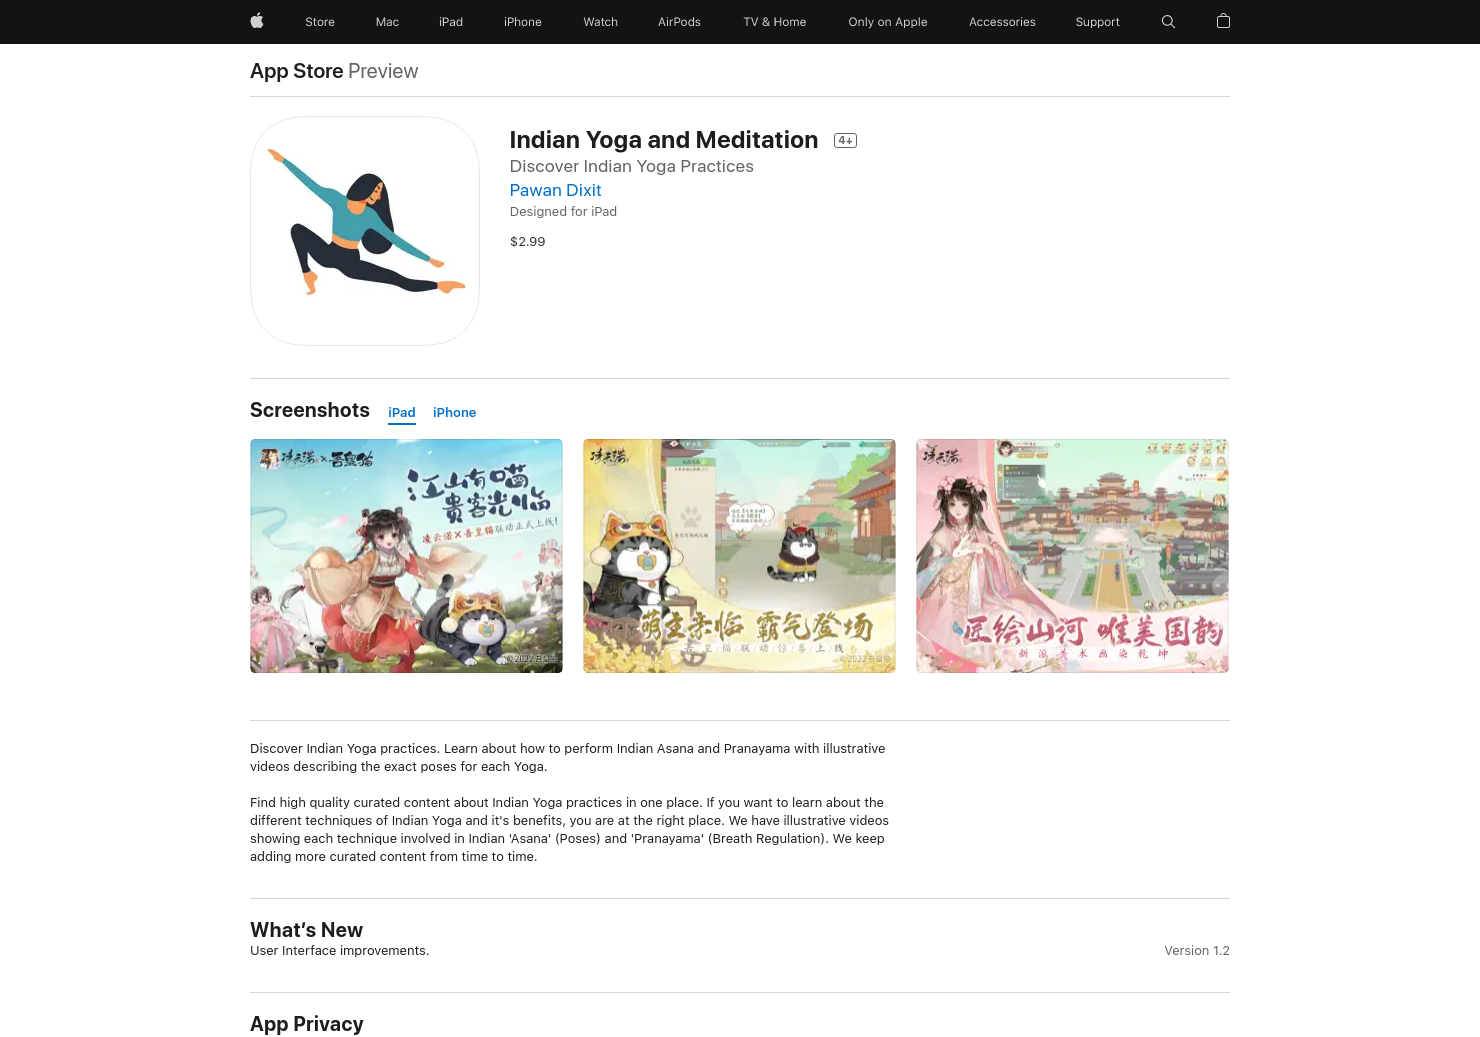 Indian Yoga and Meditation